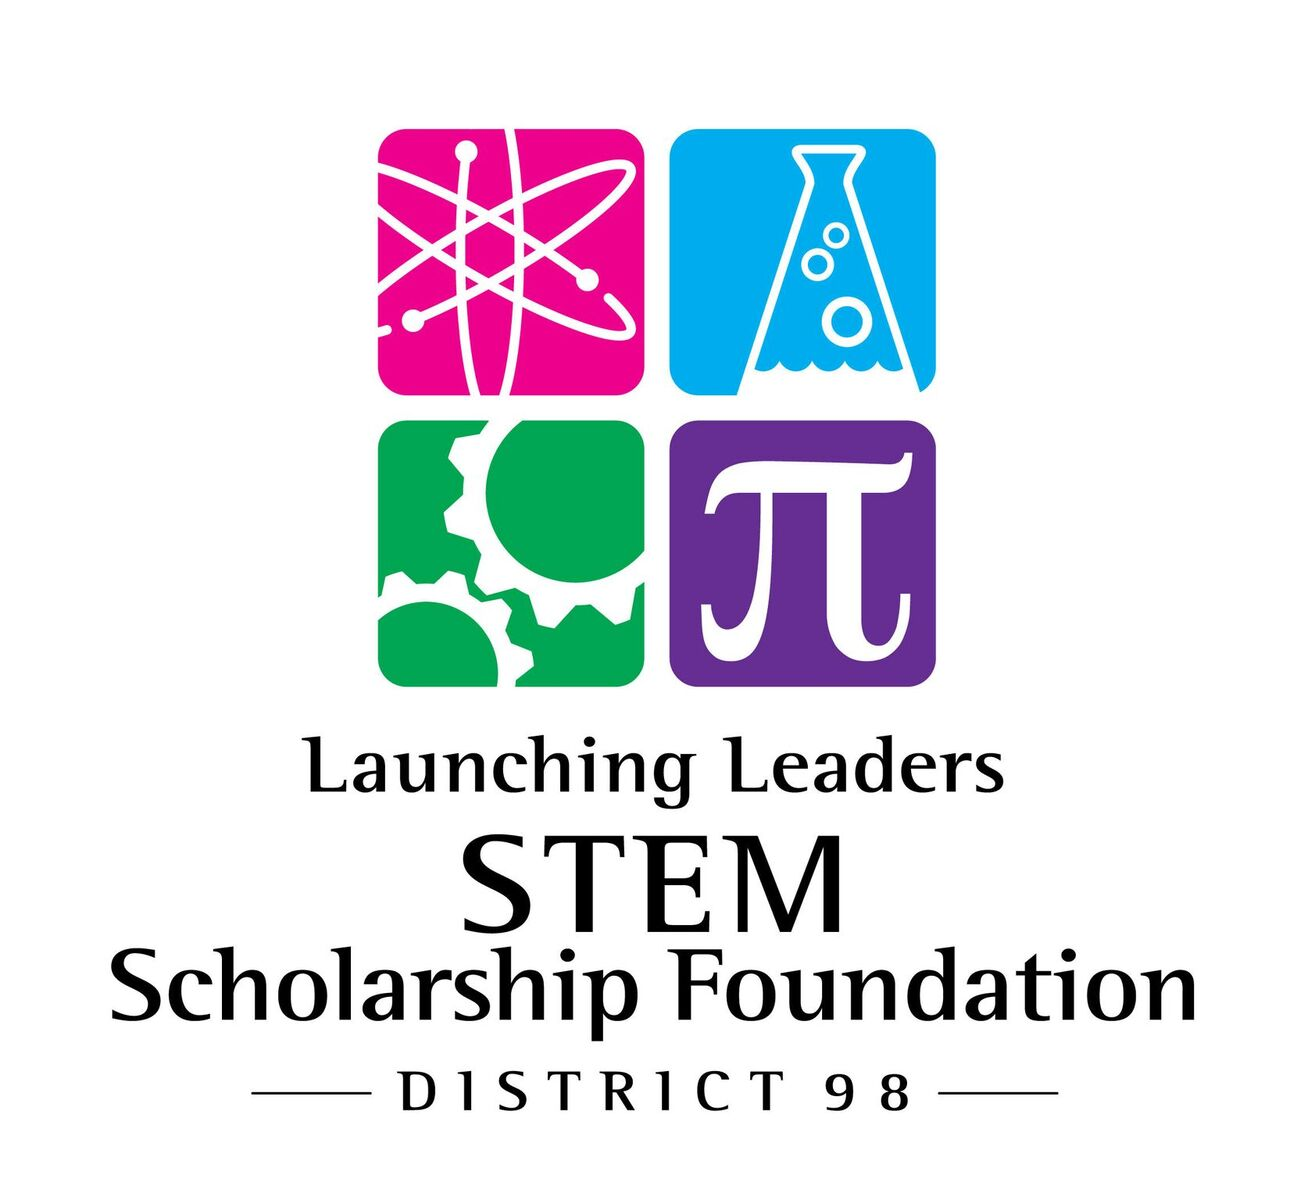 Launching Leaders STEM Scholarship Foundation